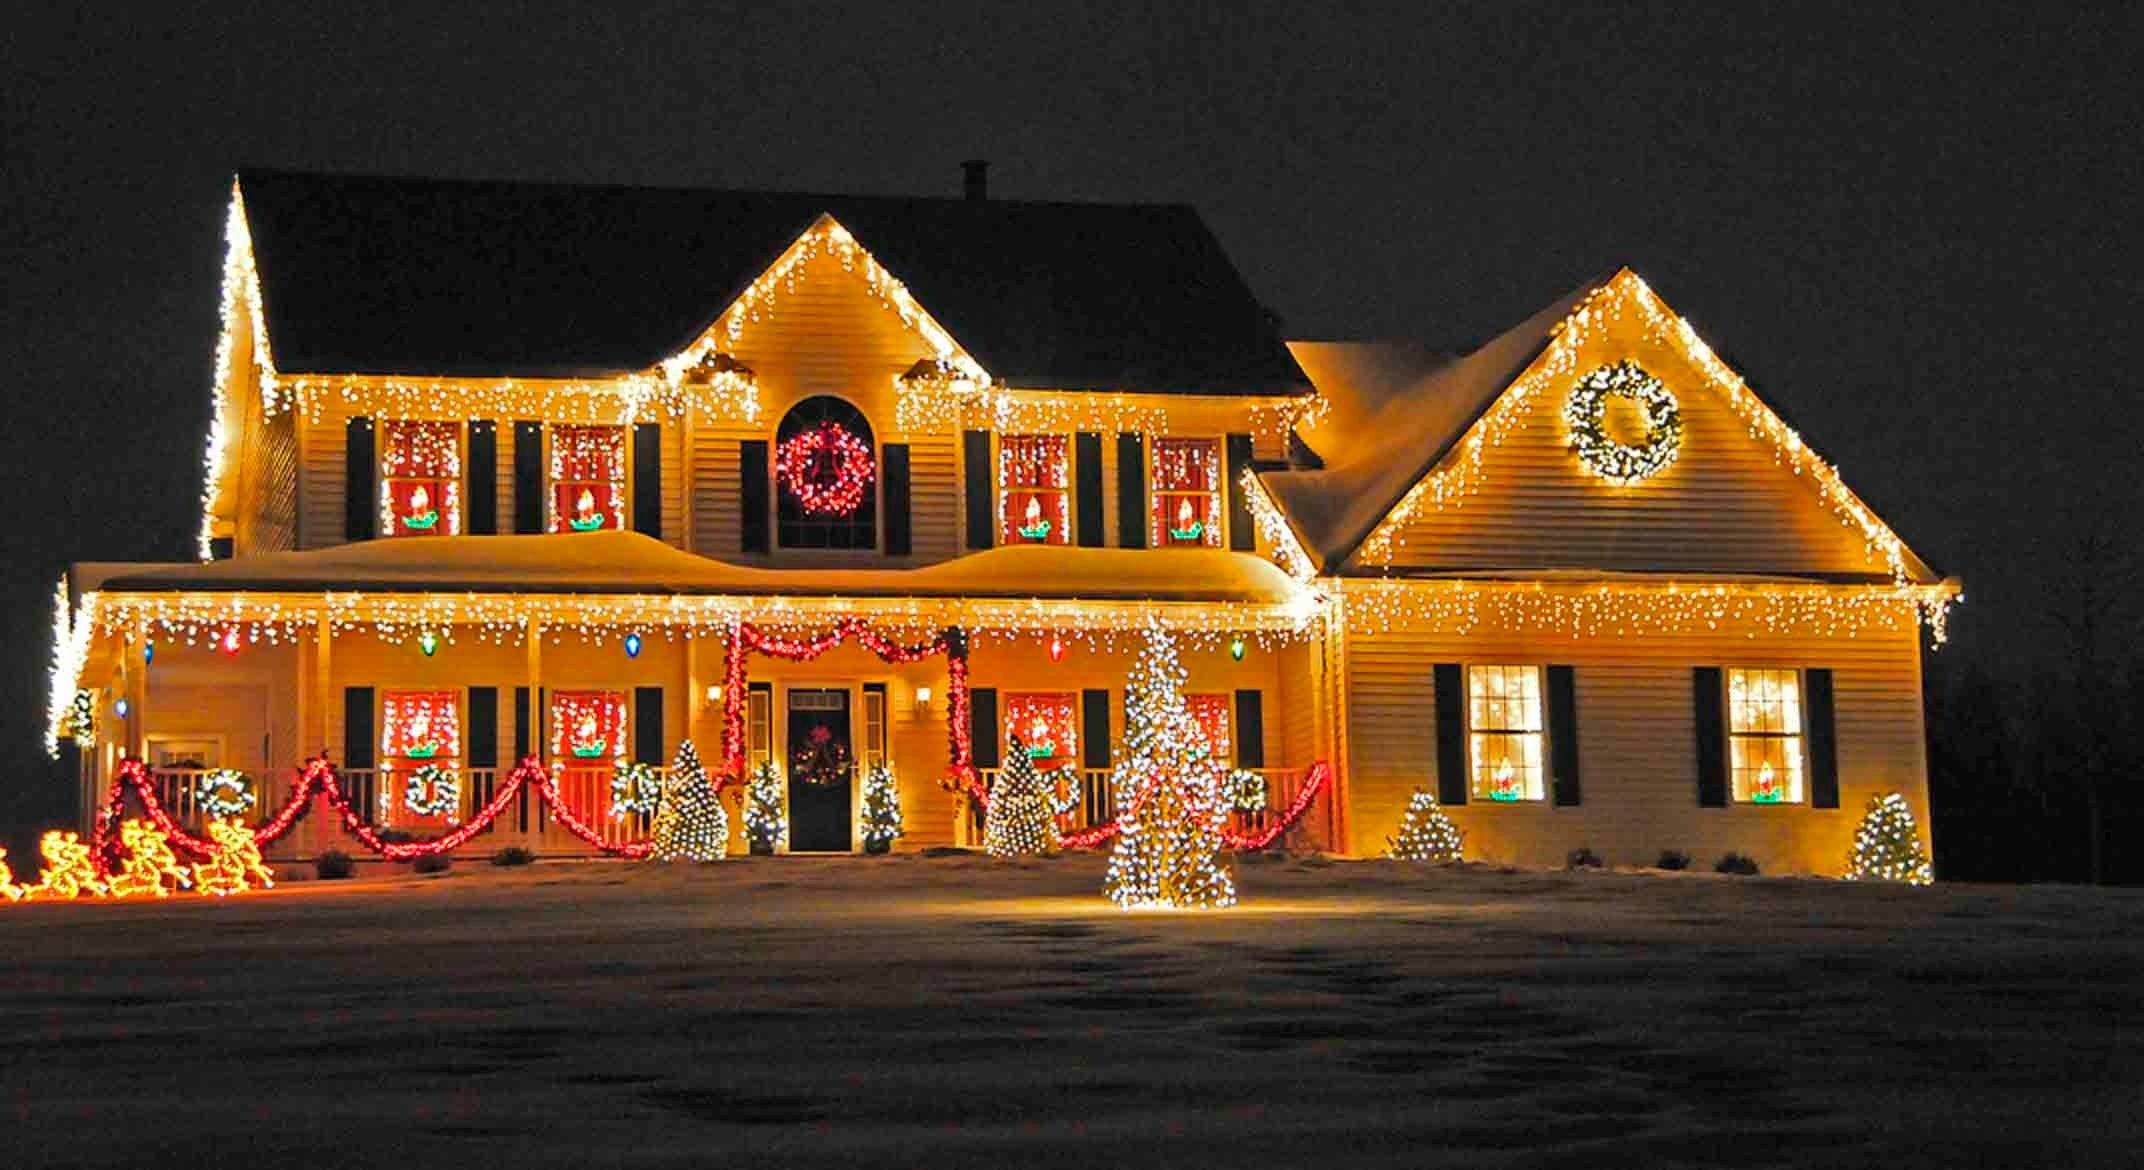 Decorations xmas tree decorations ideas neighbor still has Pictures of houses decorated for christmas outside